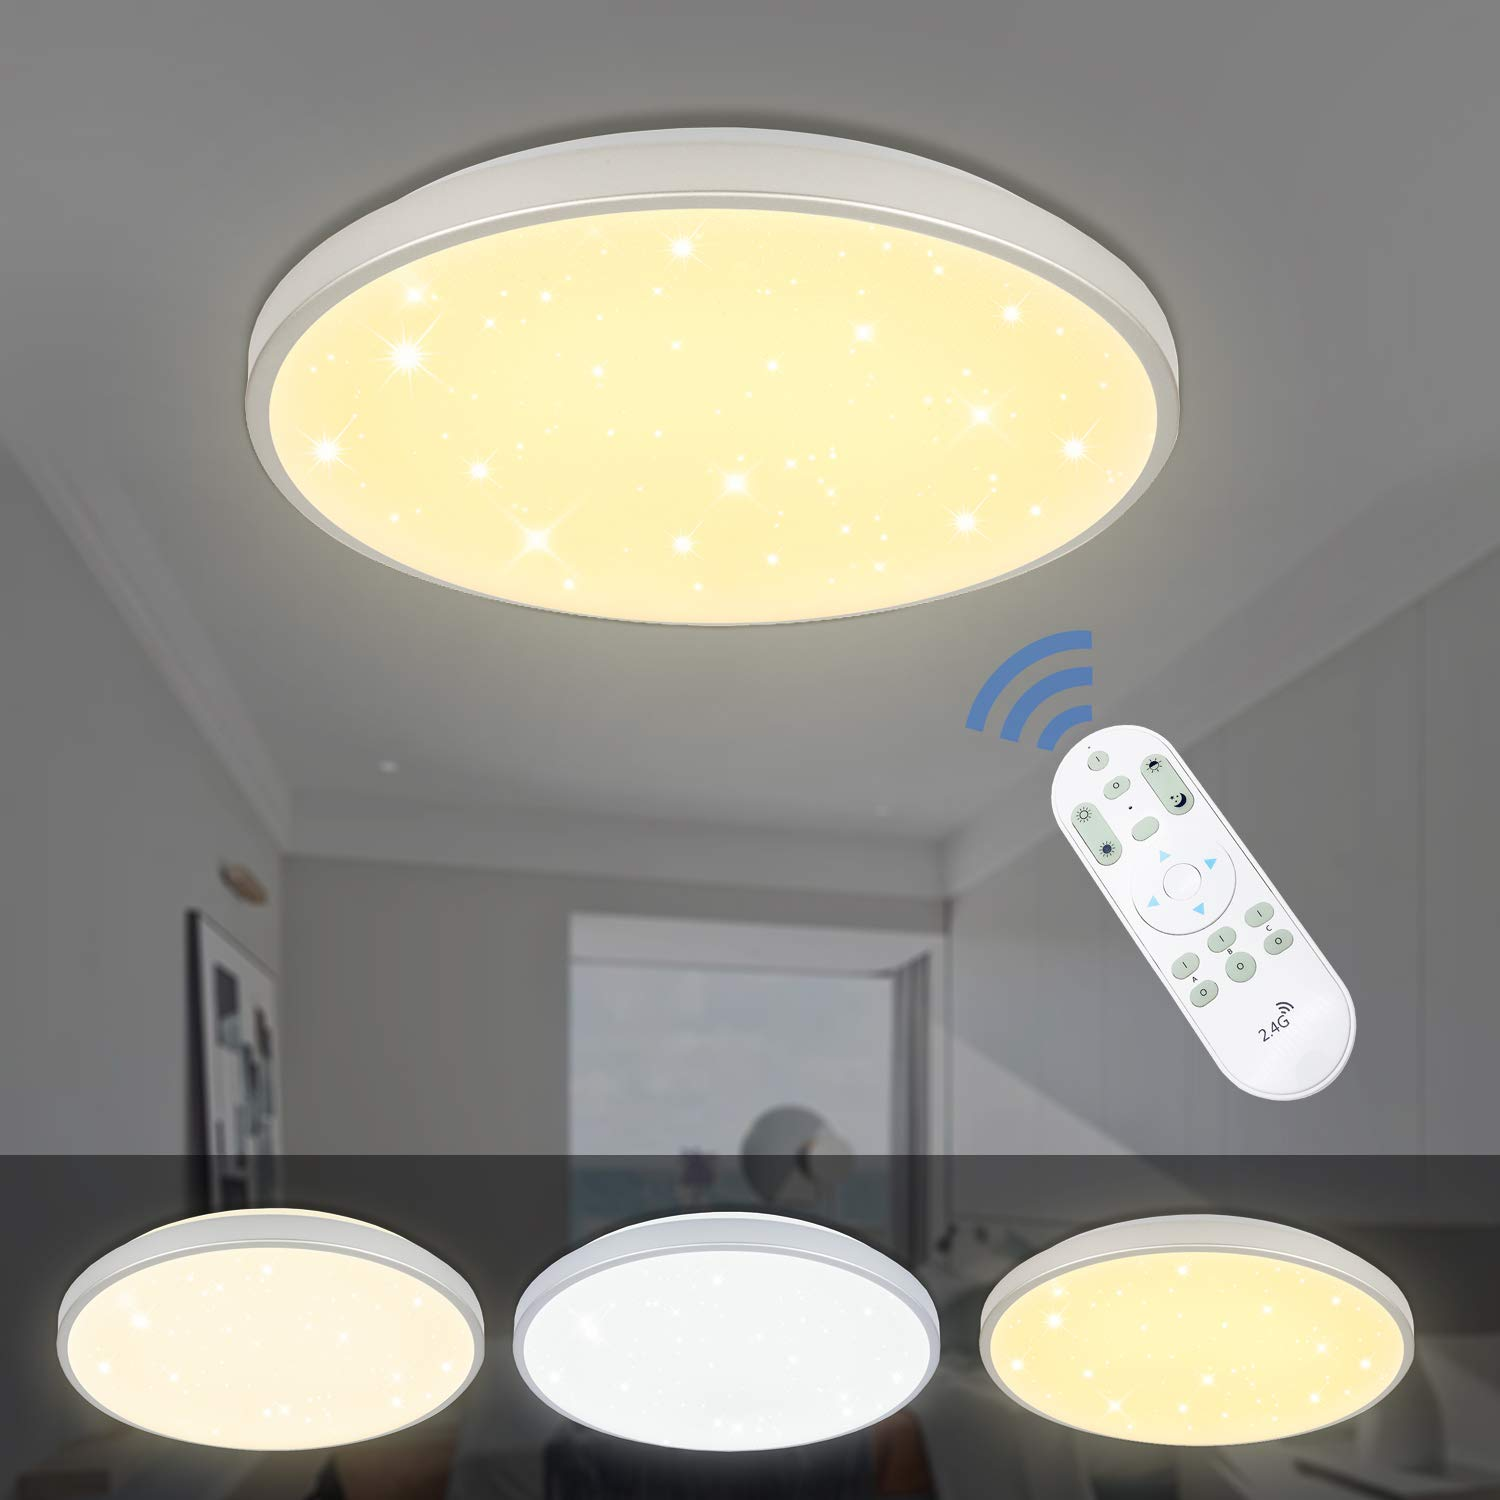 CroLED/® 6W 27 LED SMD 5050 Light Warm White Mirror Front Picture Make-up Lighting Bathroom Wall Lamp with Switch Adjustable angle AC 90-240V